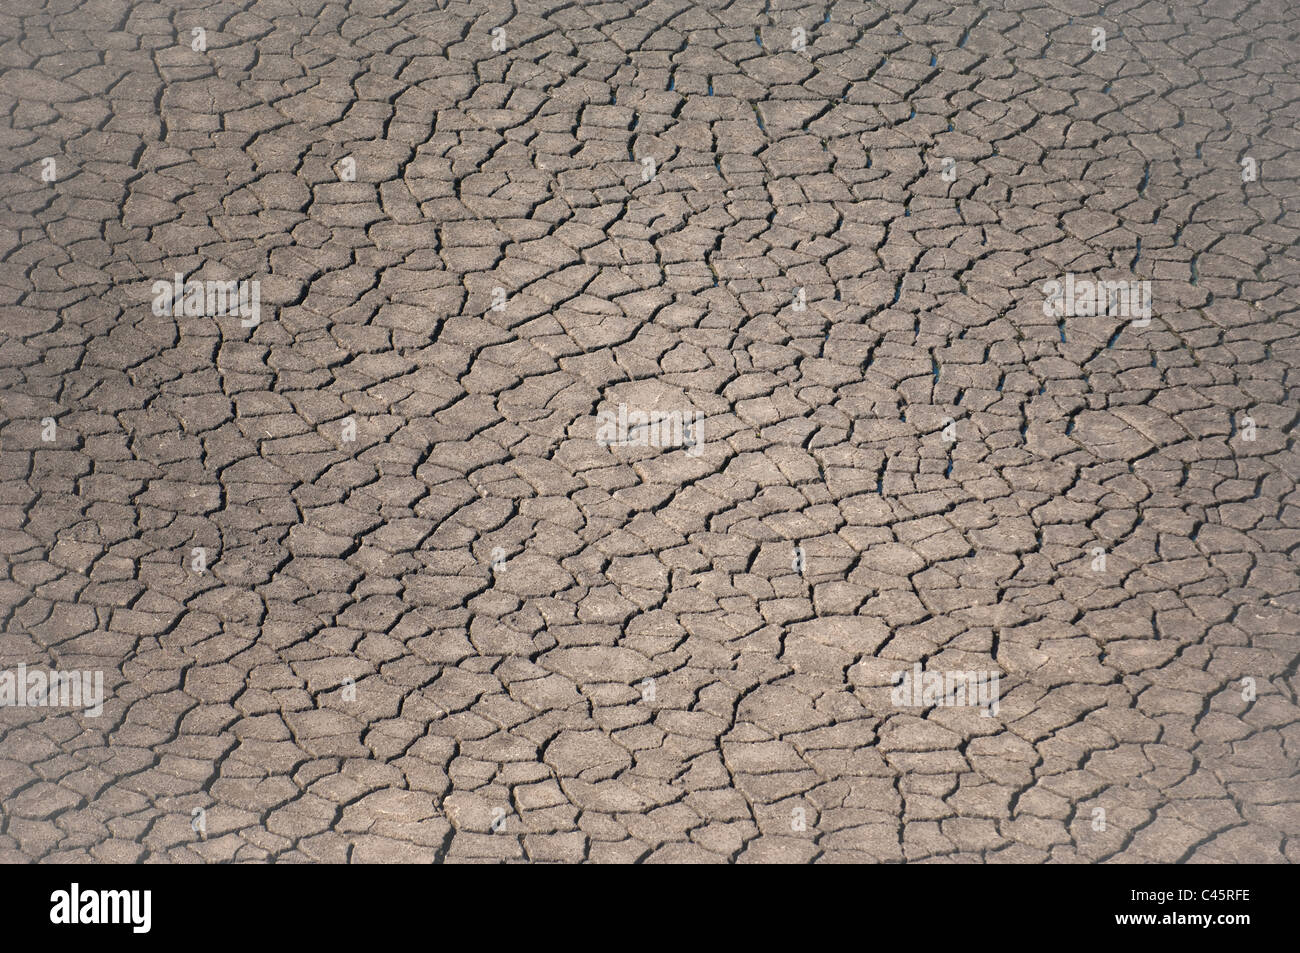 drying cracked earth in drought conditions - Stock Image